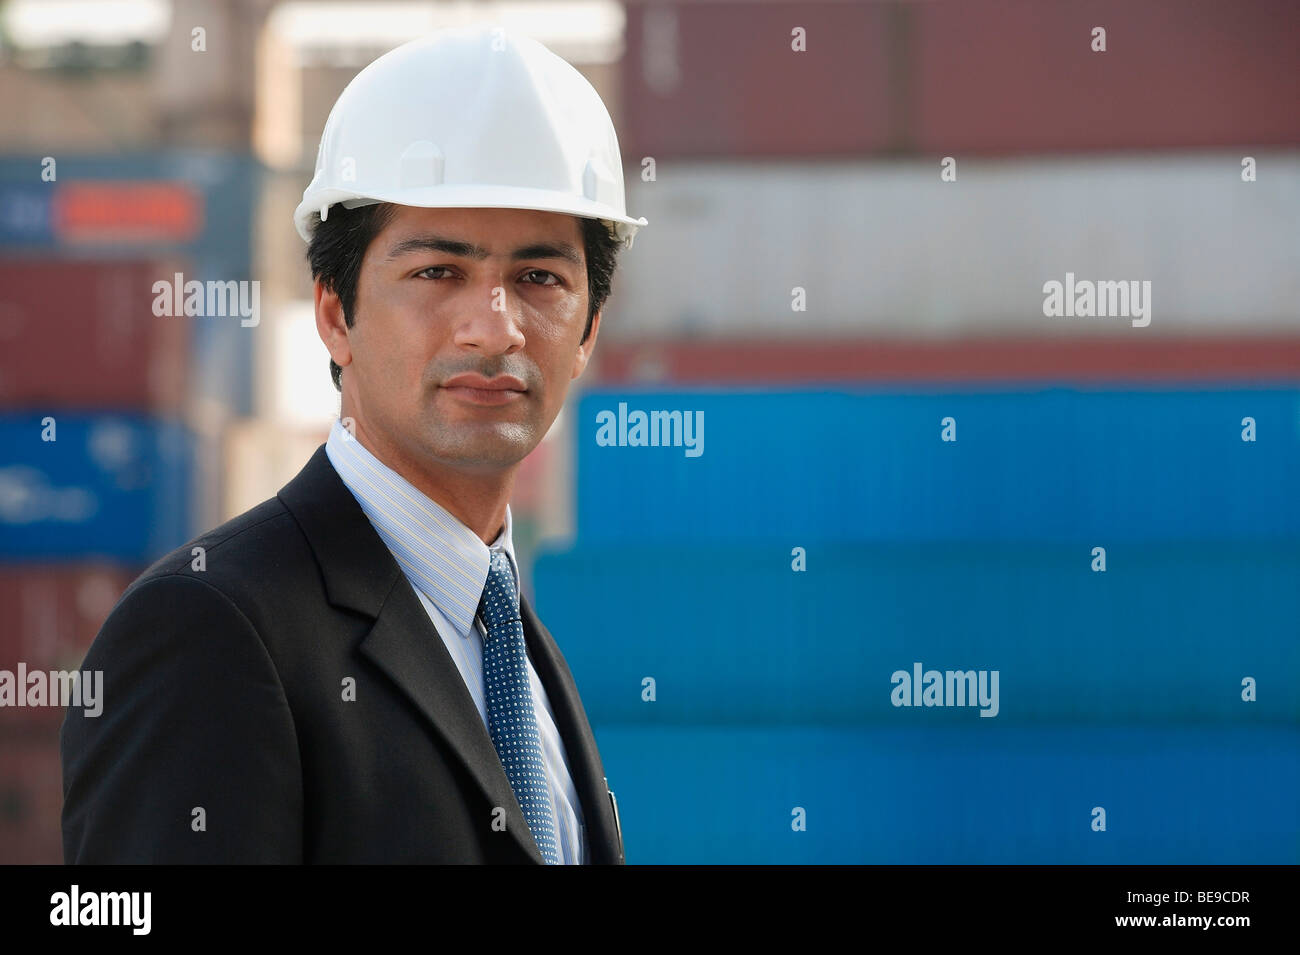 Man with helmet looking at camera - Stock Image